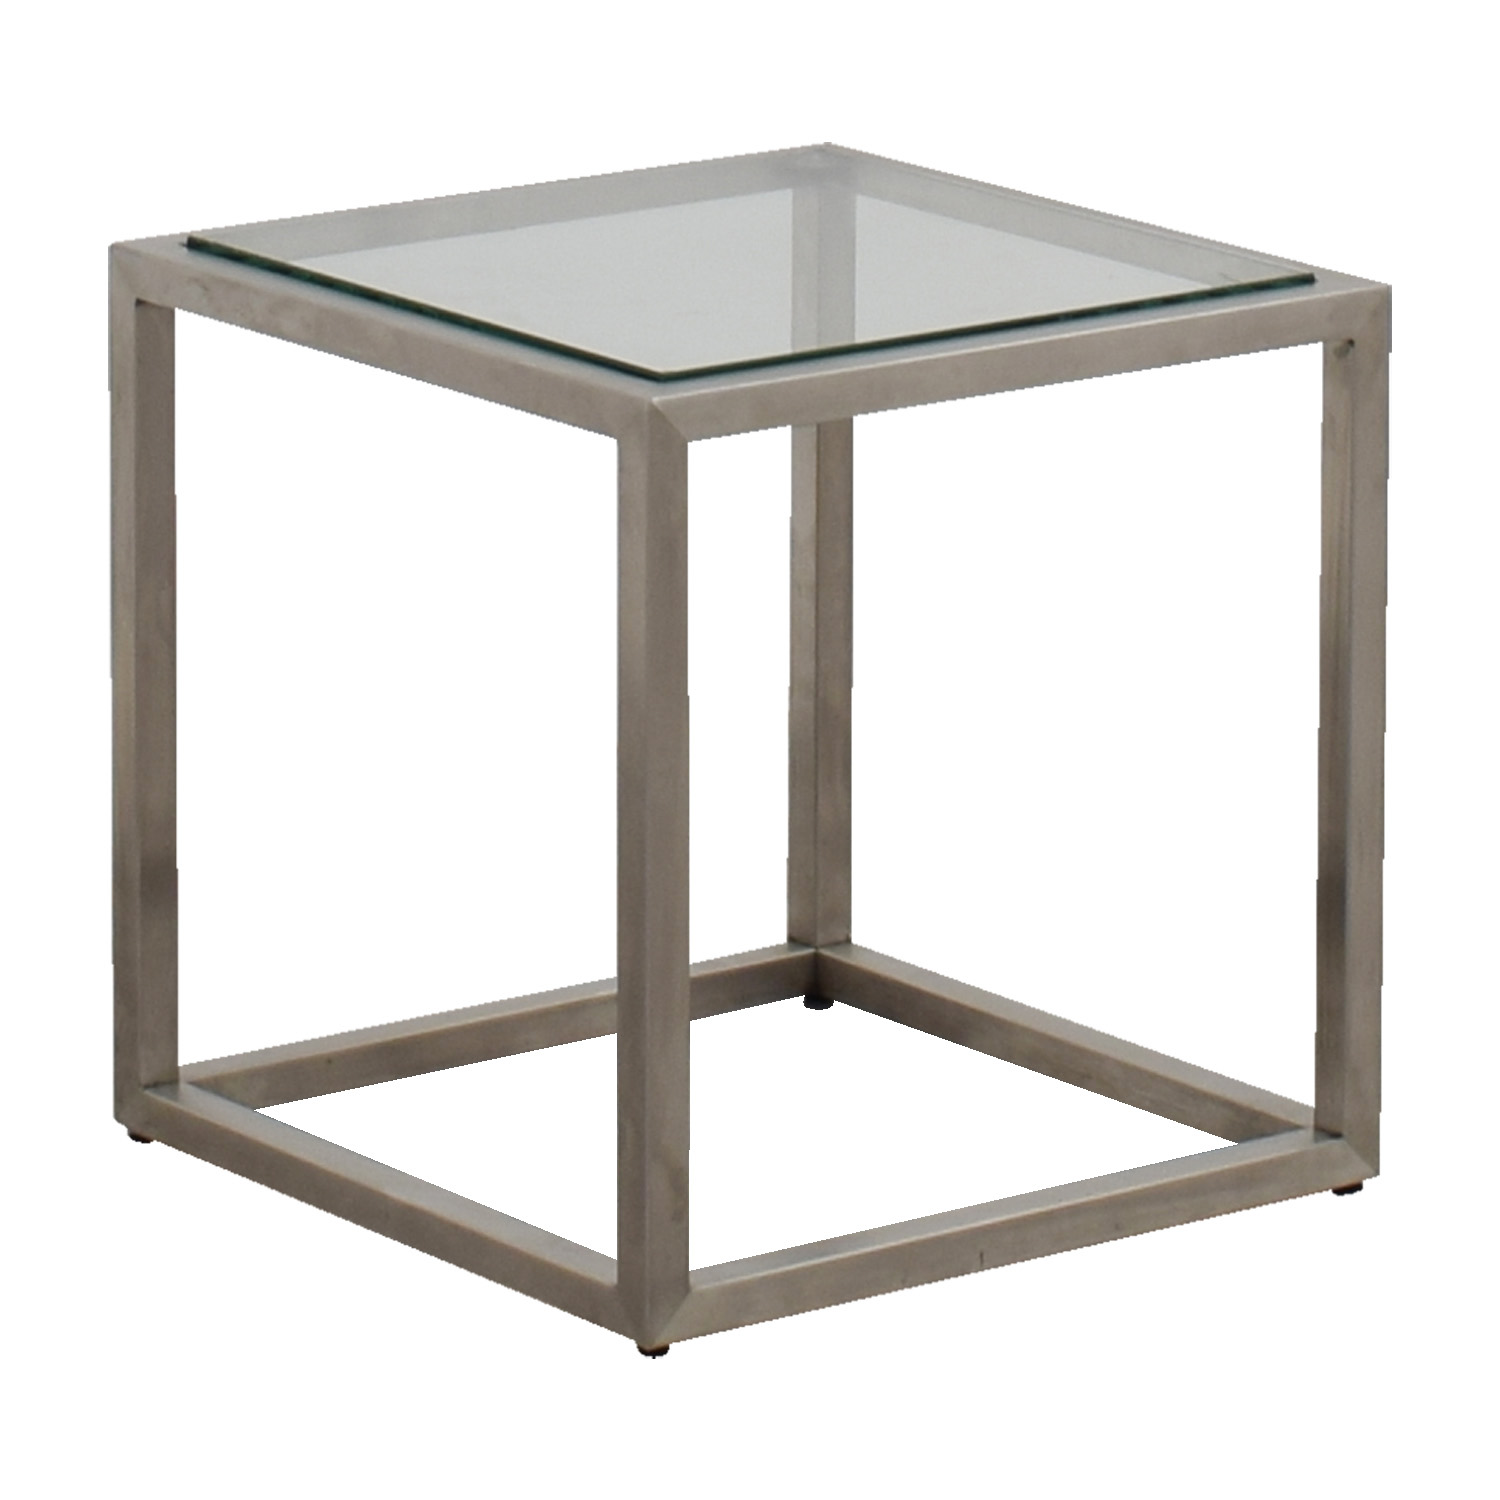 Used Ethan Allen Coffee Tables: Ethan Allen Ethan Allen Metal And Glass Cube